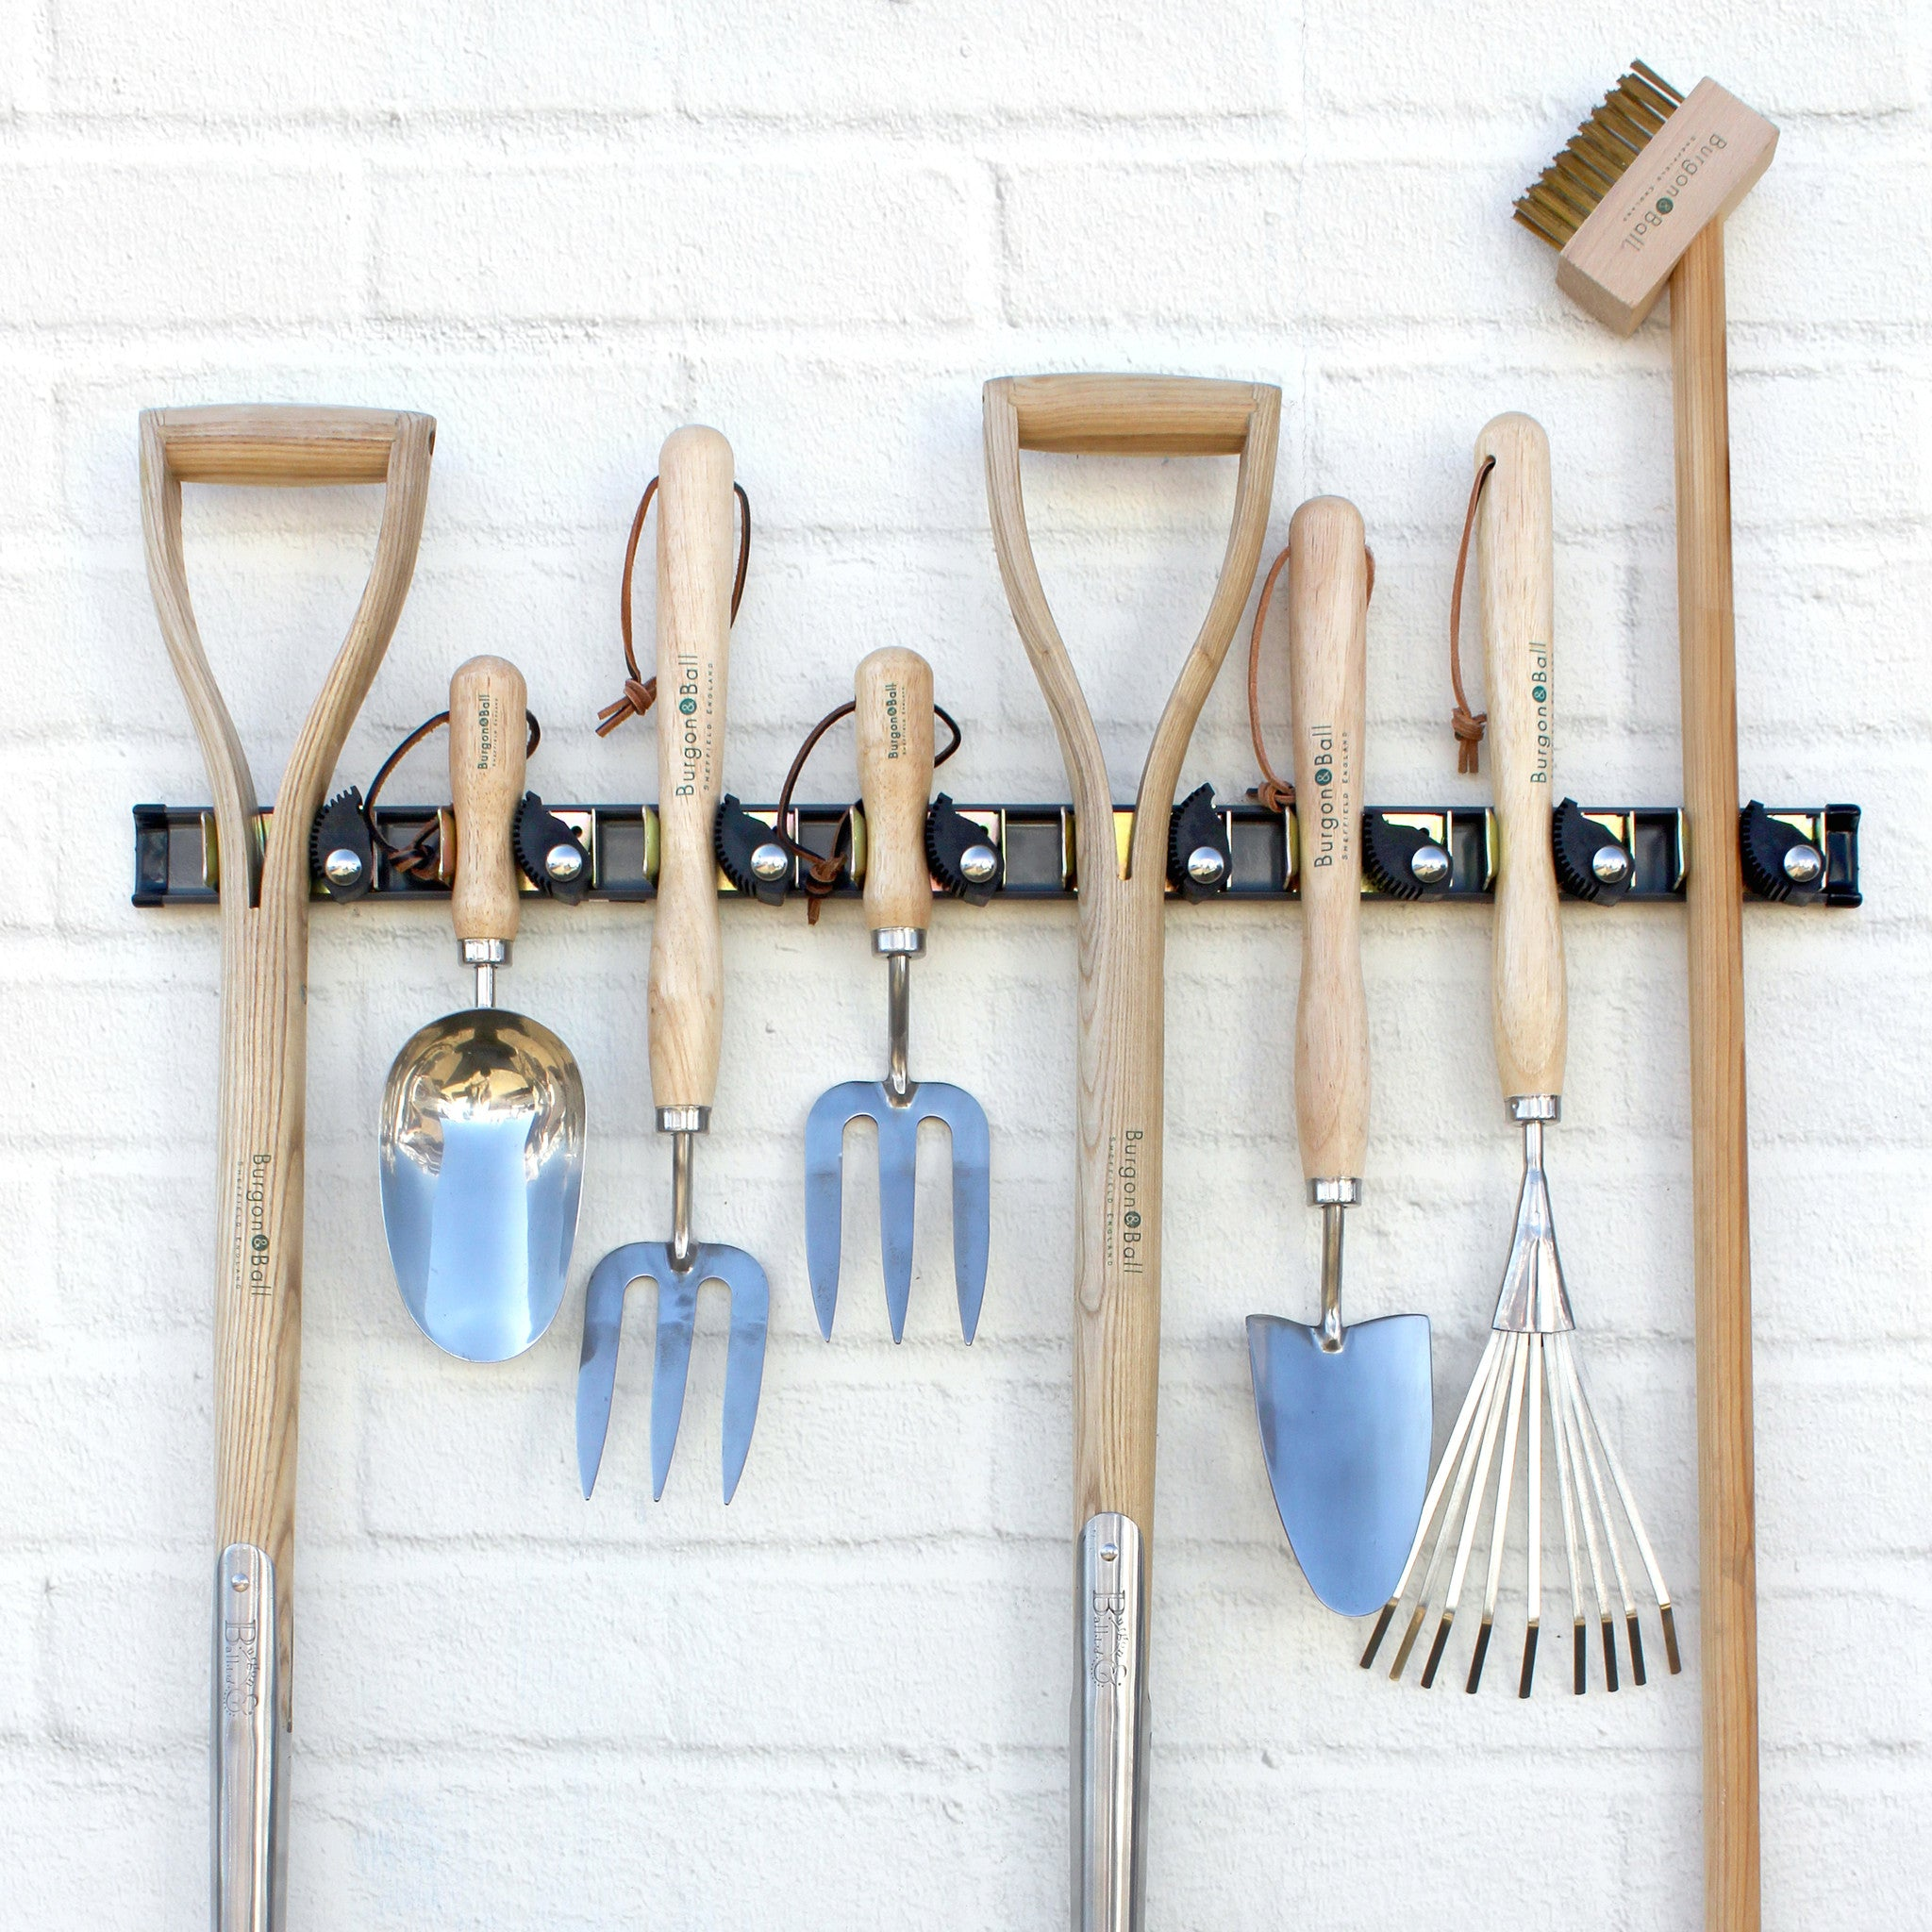 Tool Rack - The Potting Shed Garden Tools